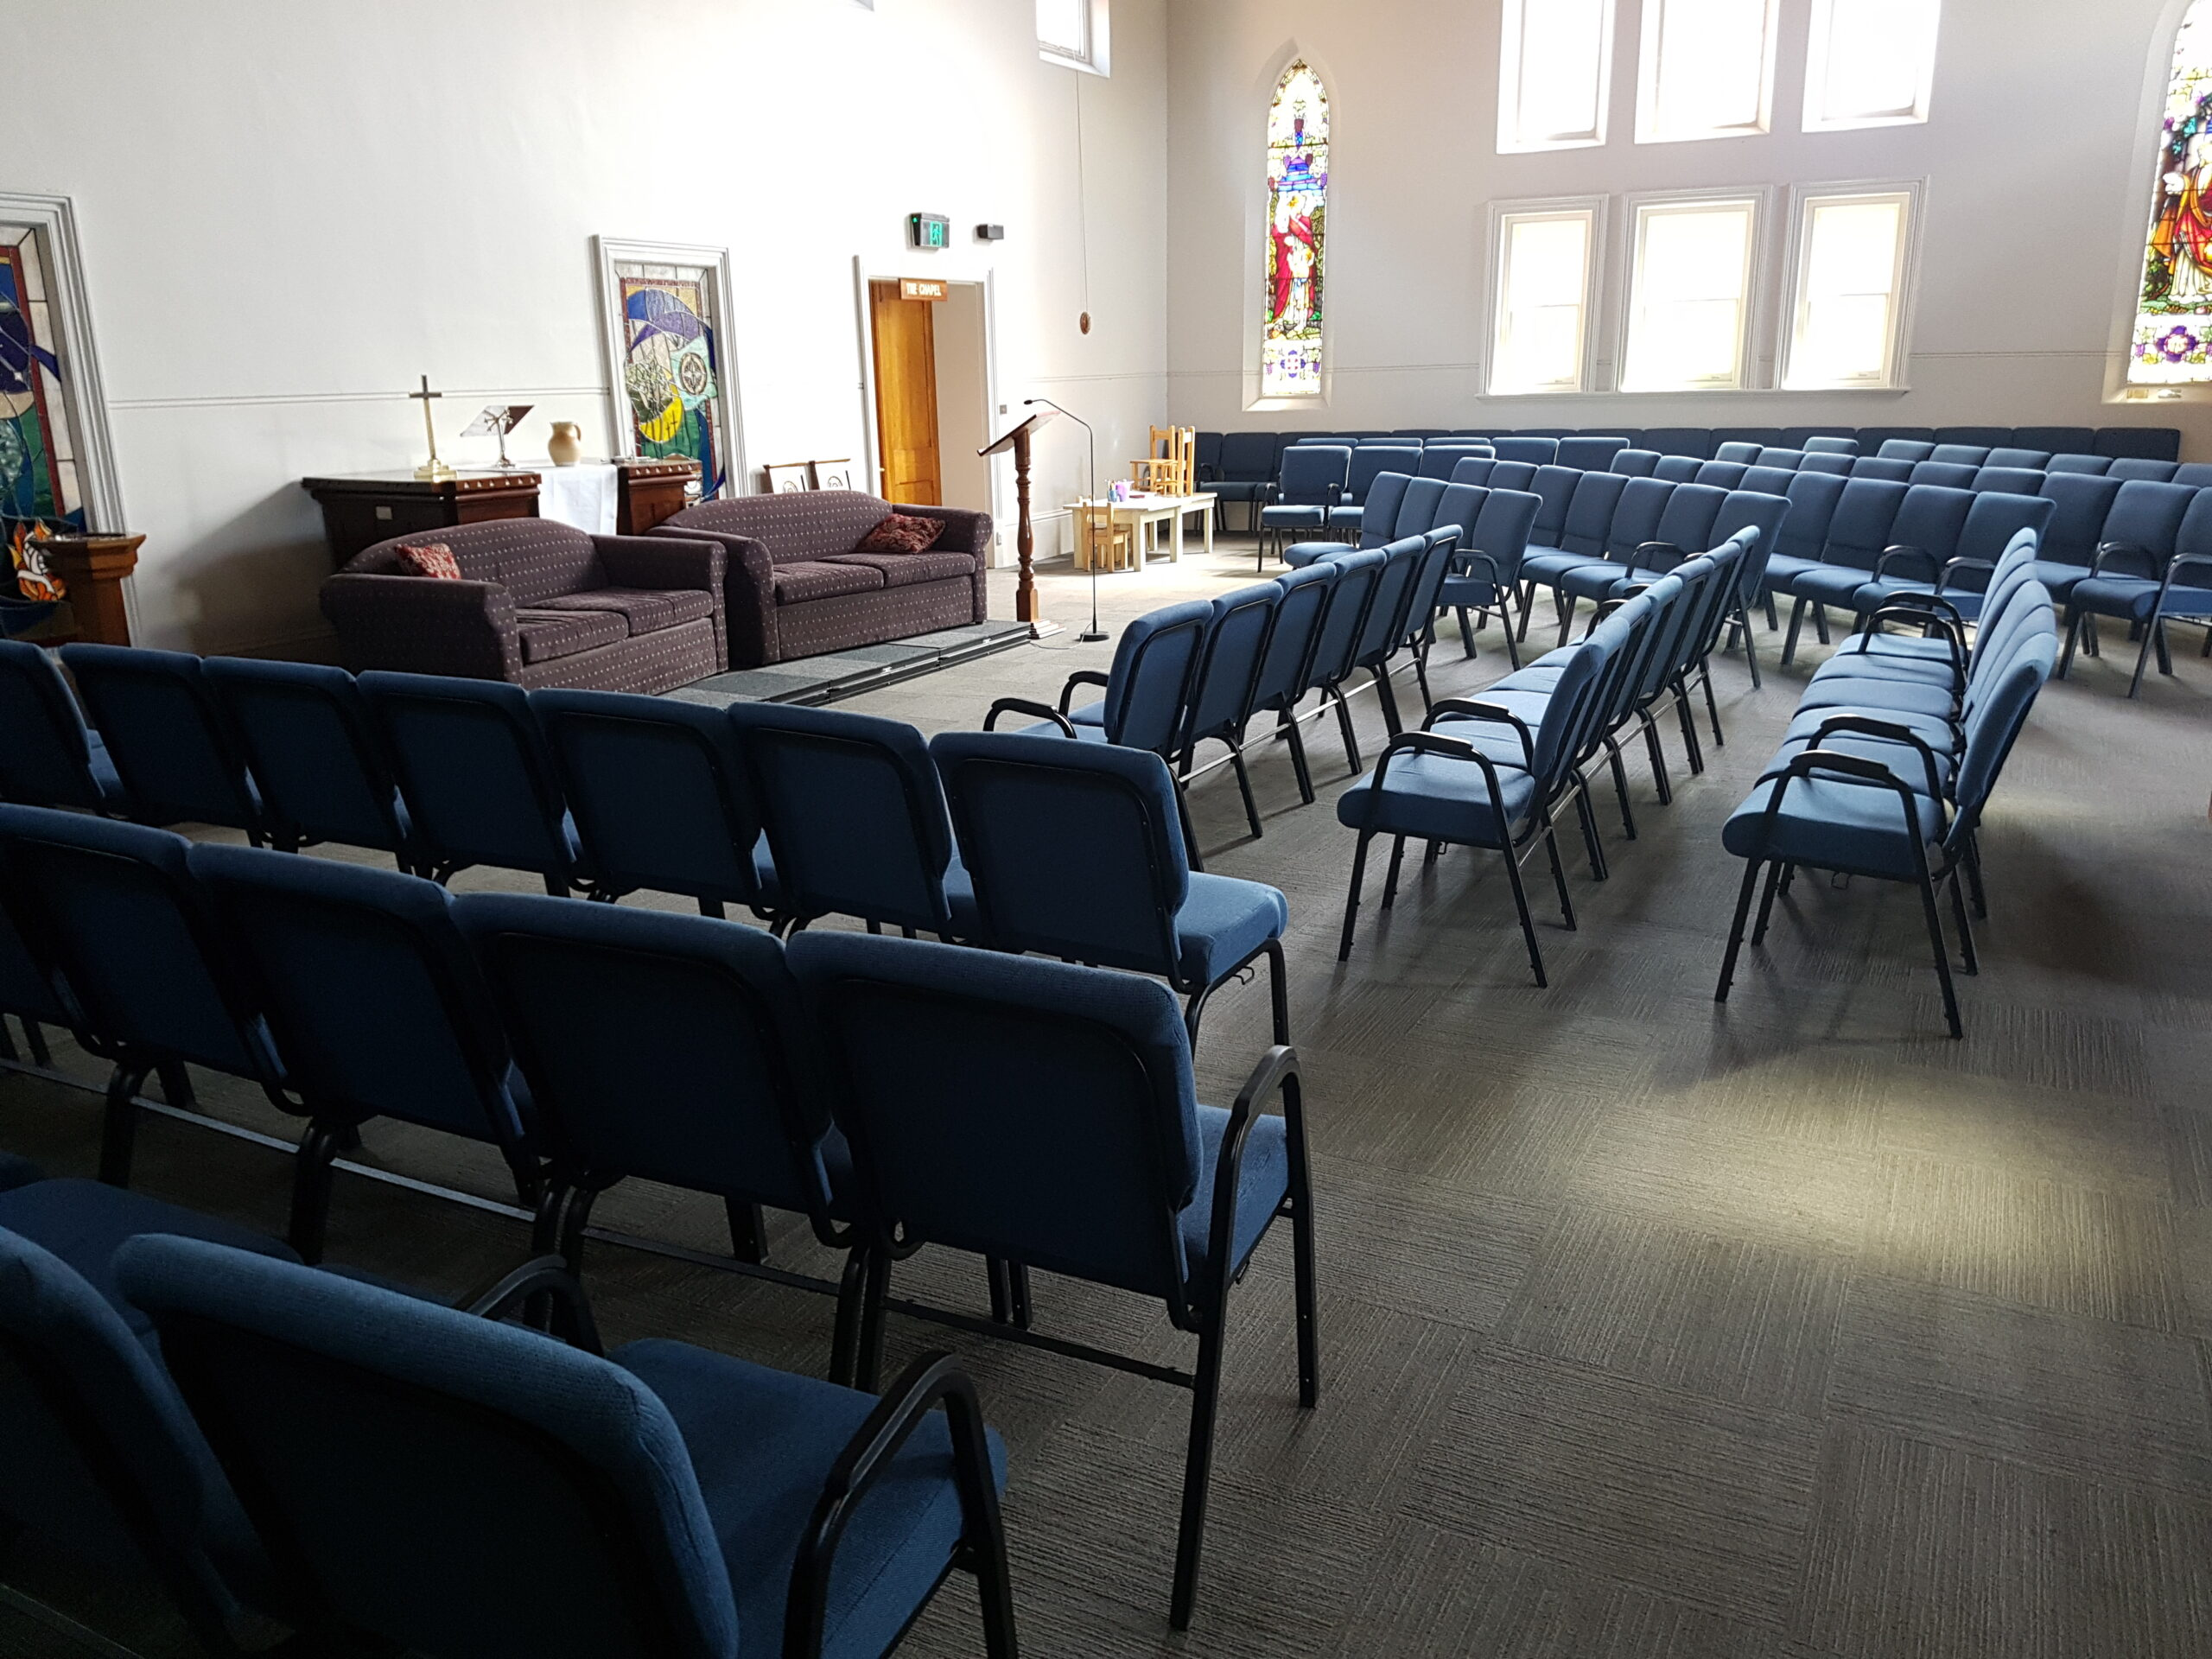 Worship in a different layout